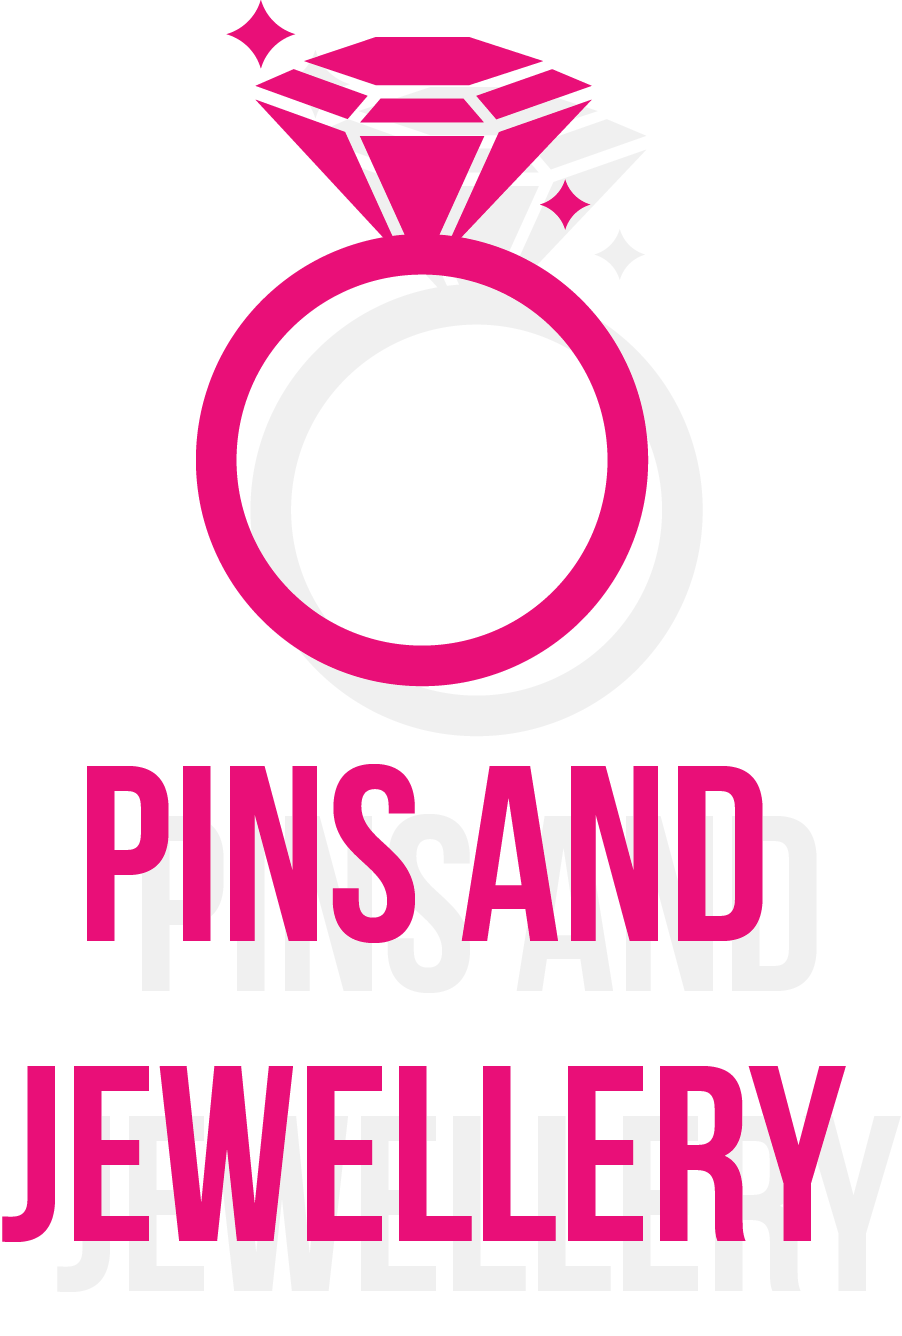 Pins and Jewellery